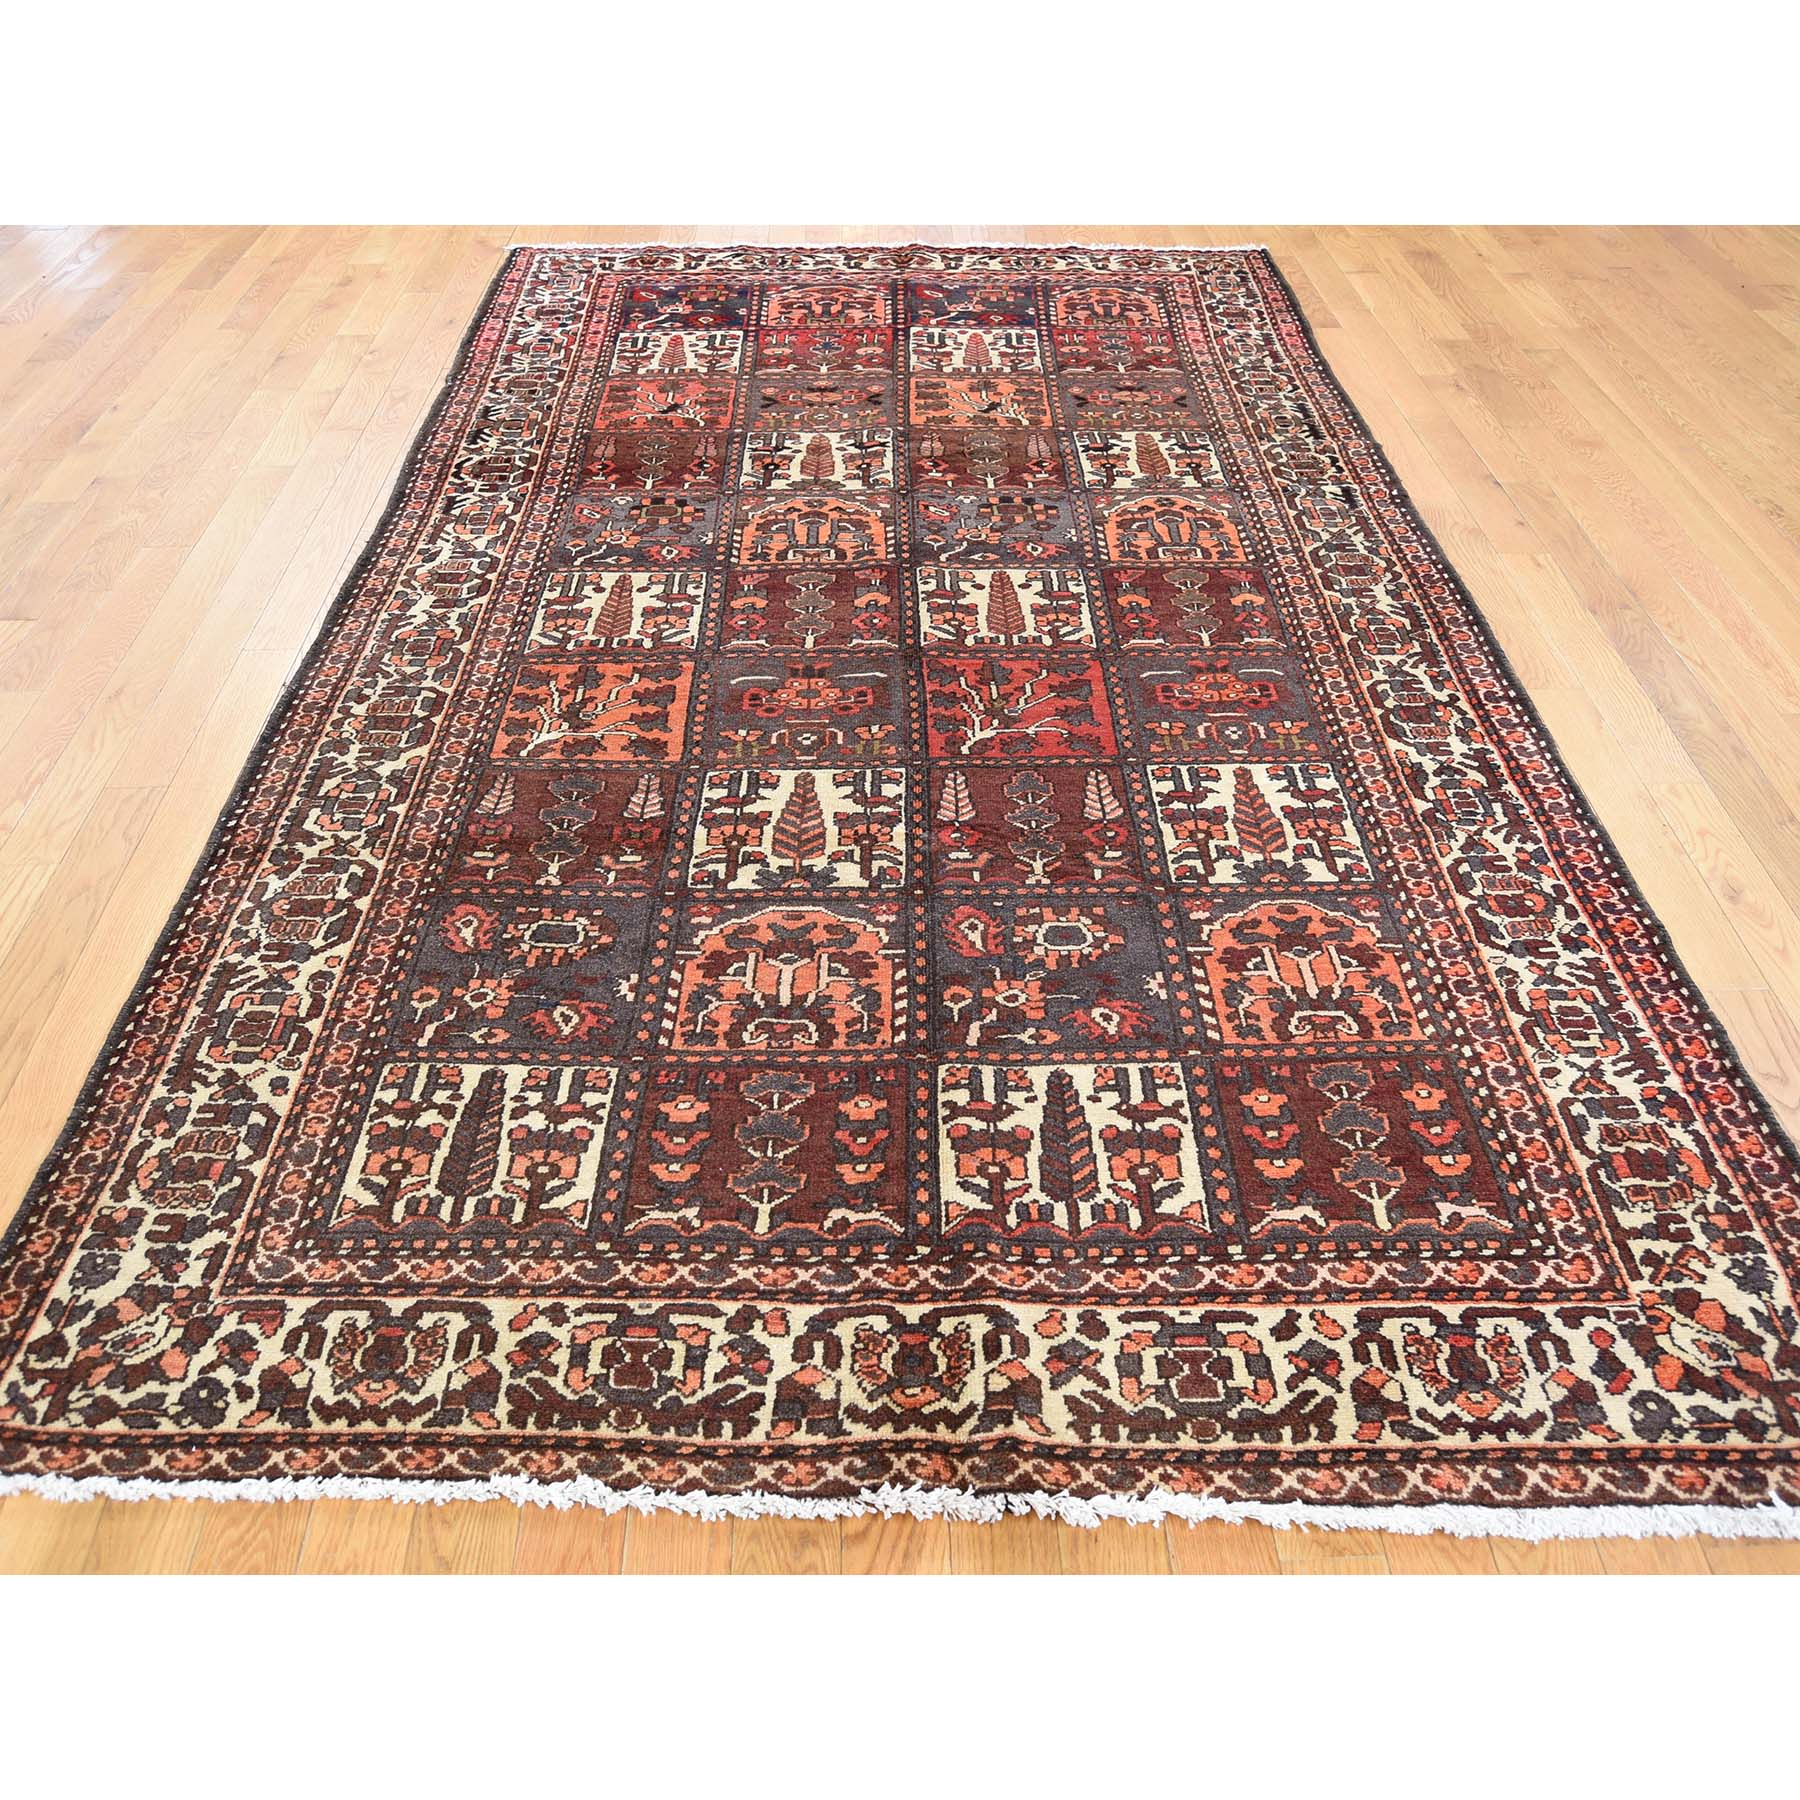 5-6 x9-7  Garden Design Bakhtiari Semi Antique Persian Hand-Knotted Wide Runner Oriental Rug